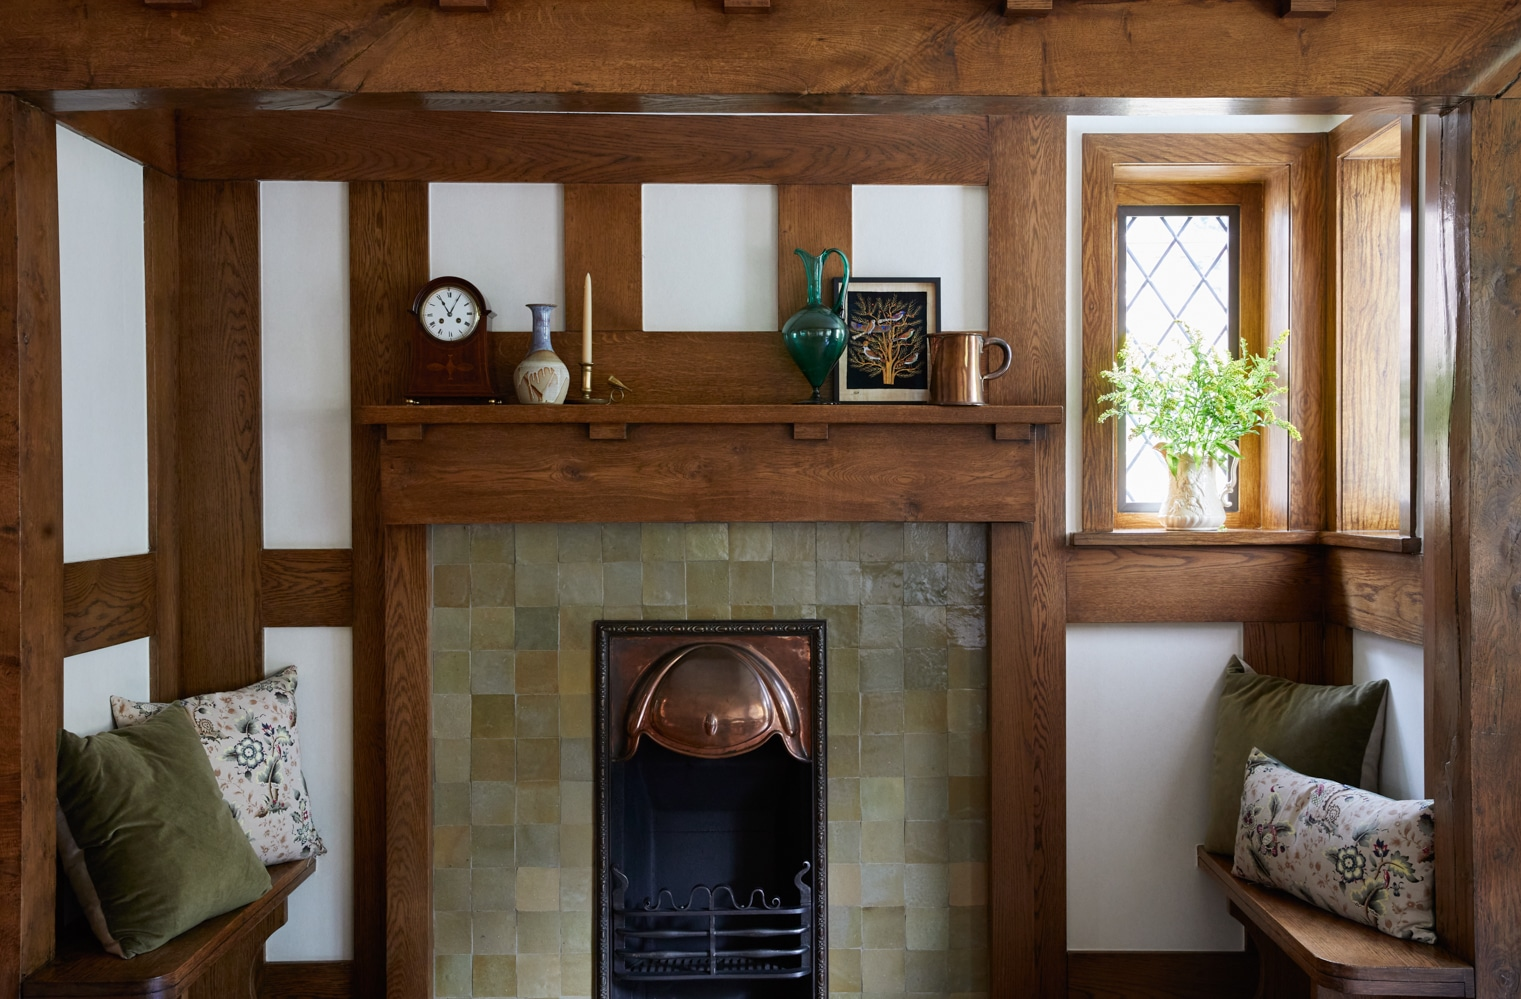 Arts & Crafts restoration of an Inglenook fire in the Arts & Crafts style